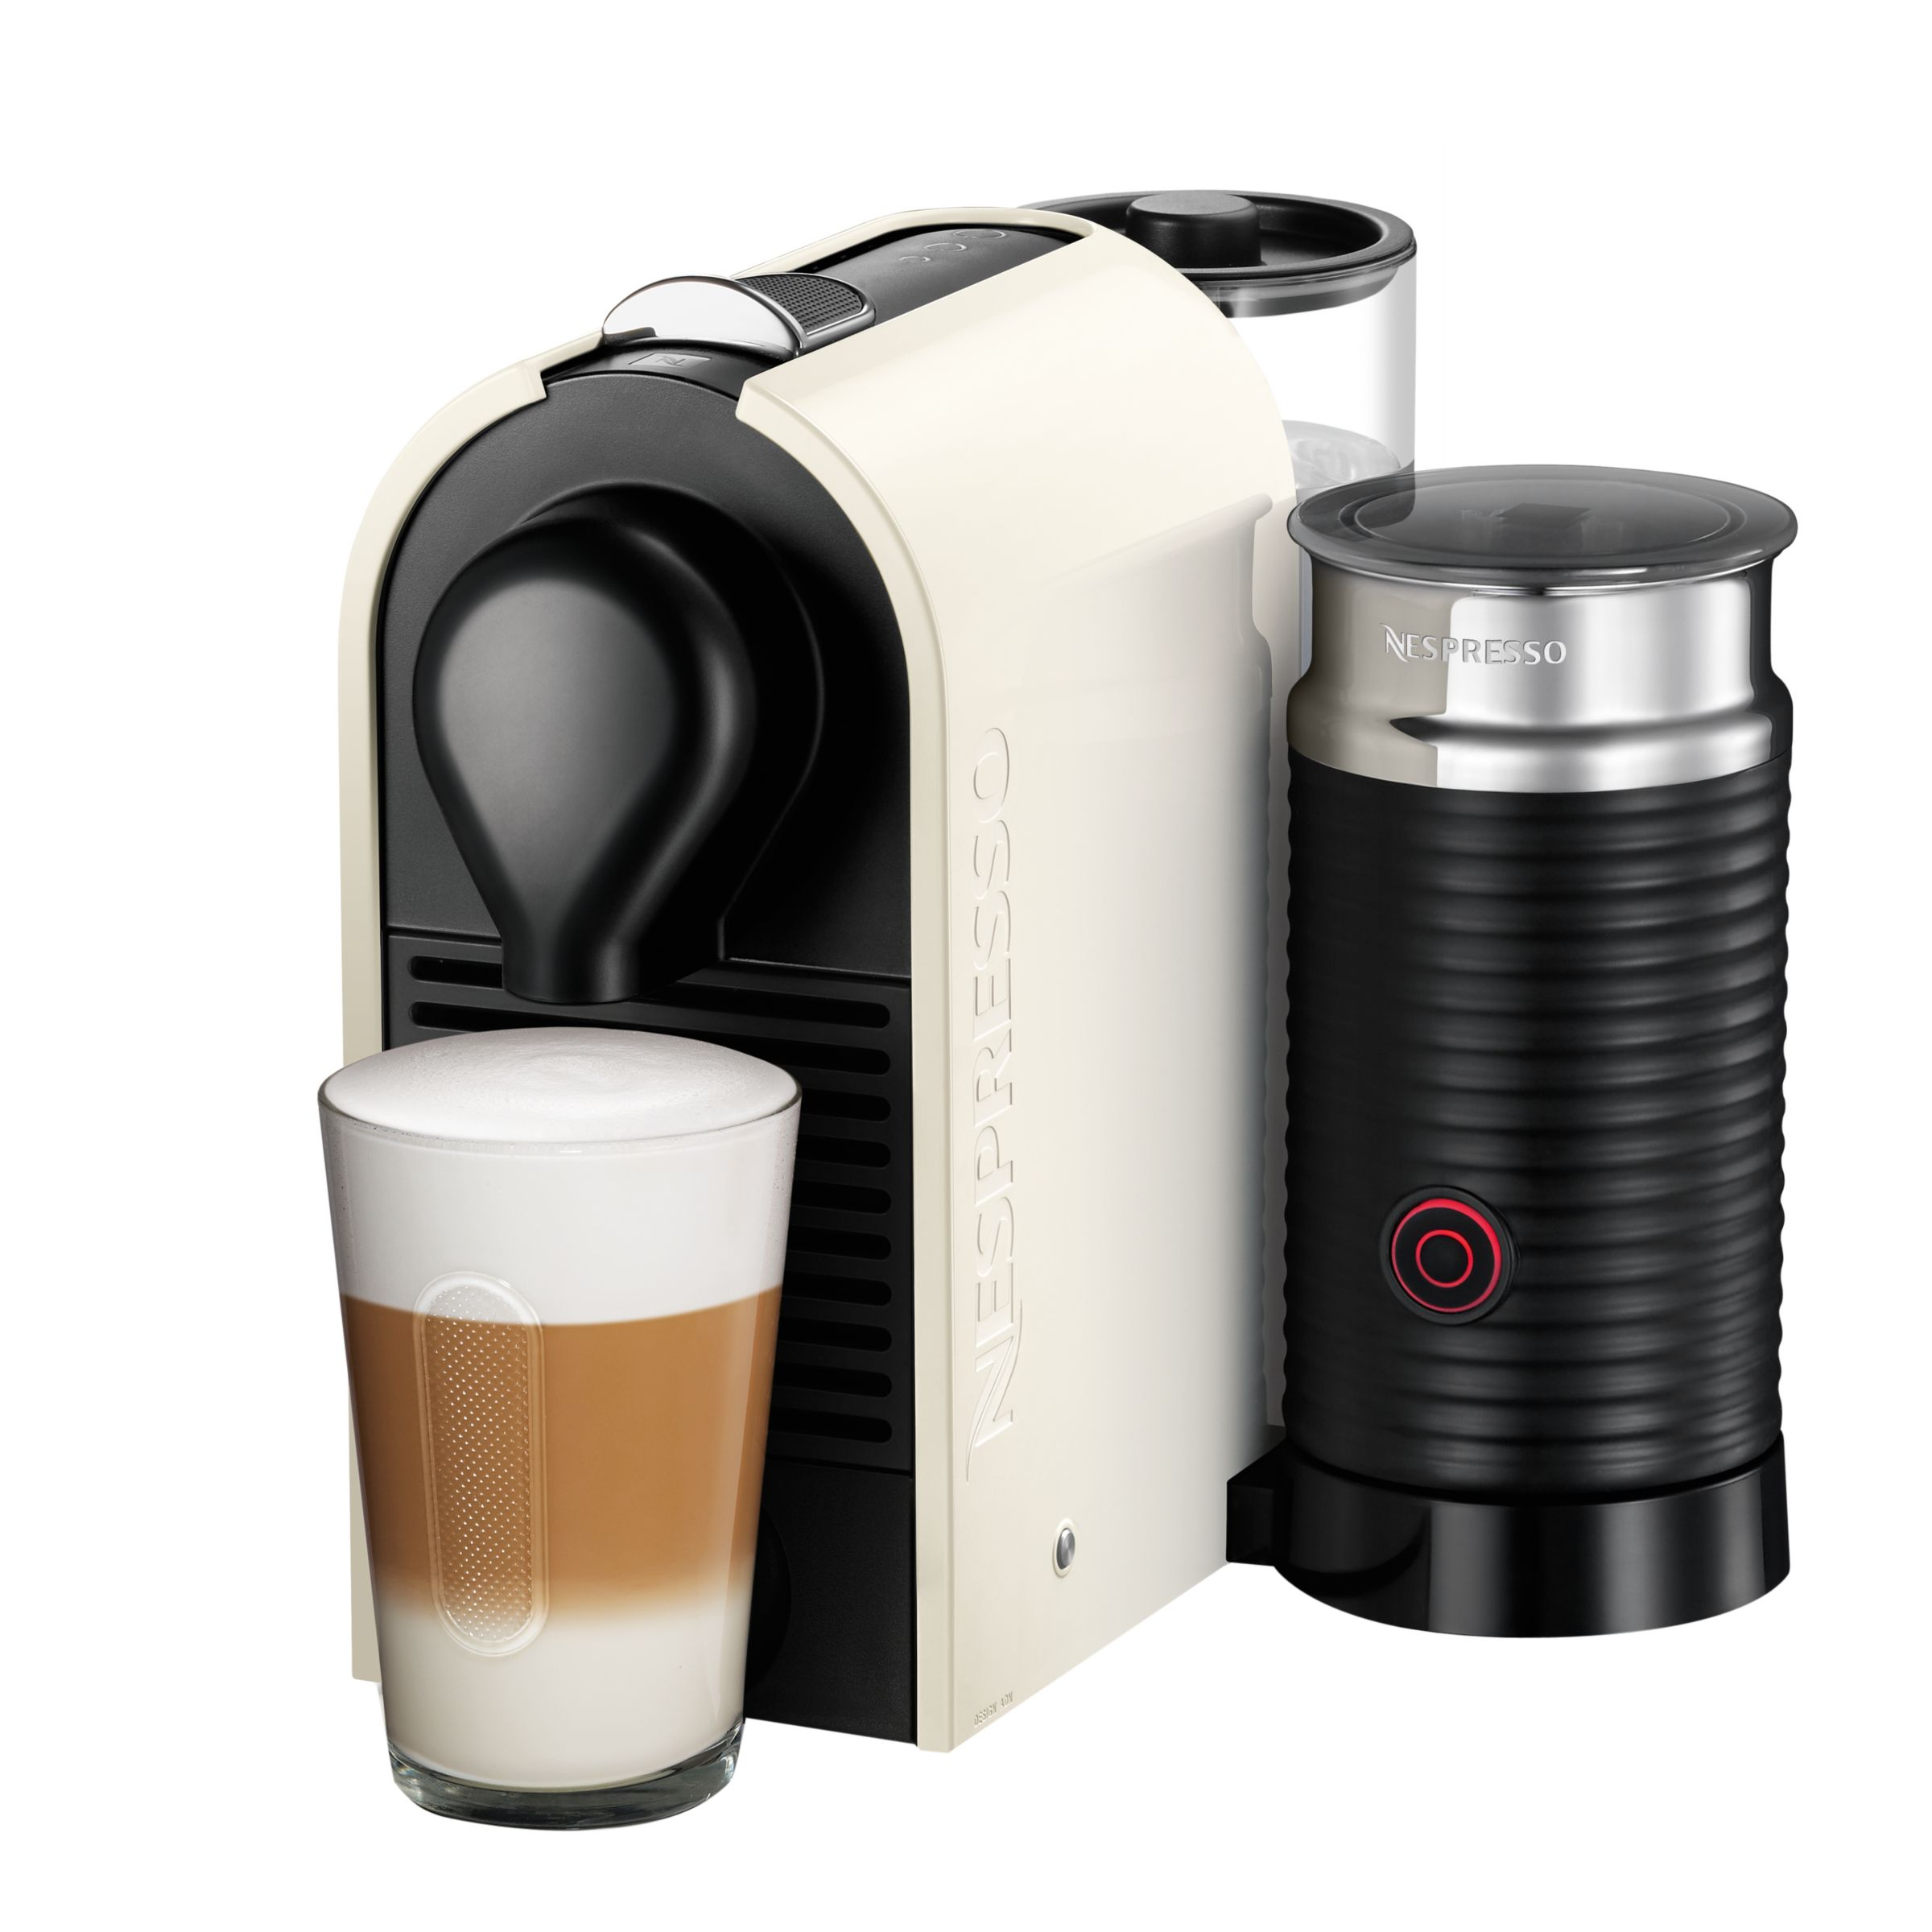 Best Coffee Maker Using Pods : Buy cheap Nespresso pods coffee - compare Coffee Makers prices for best UK deals